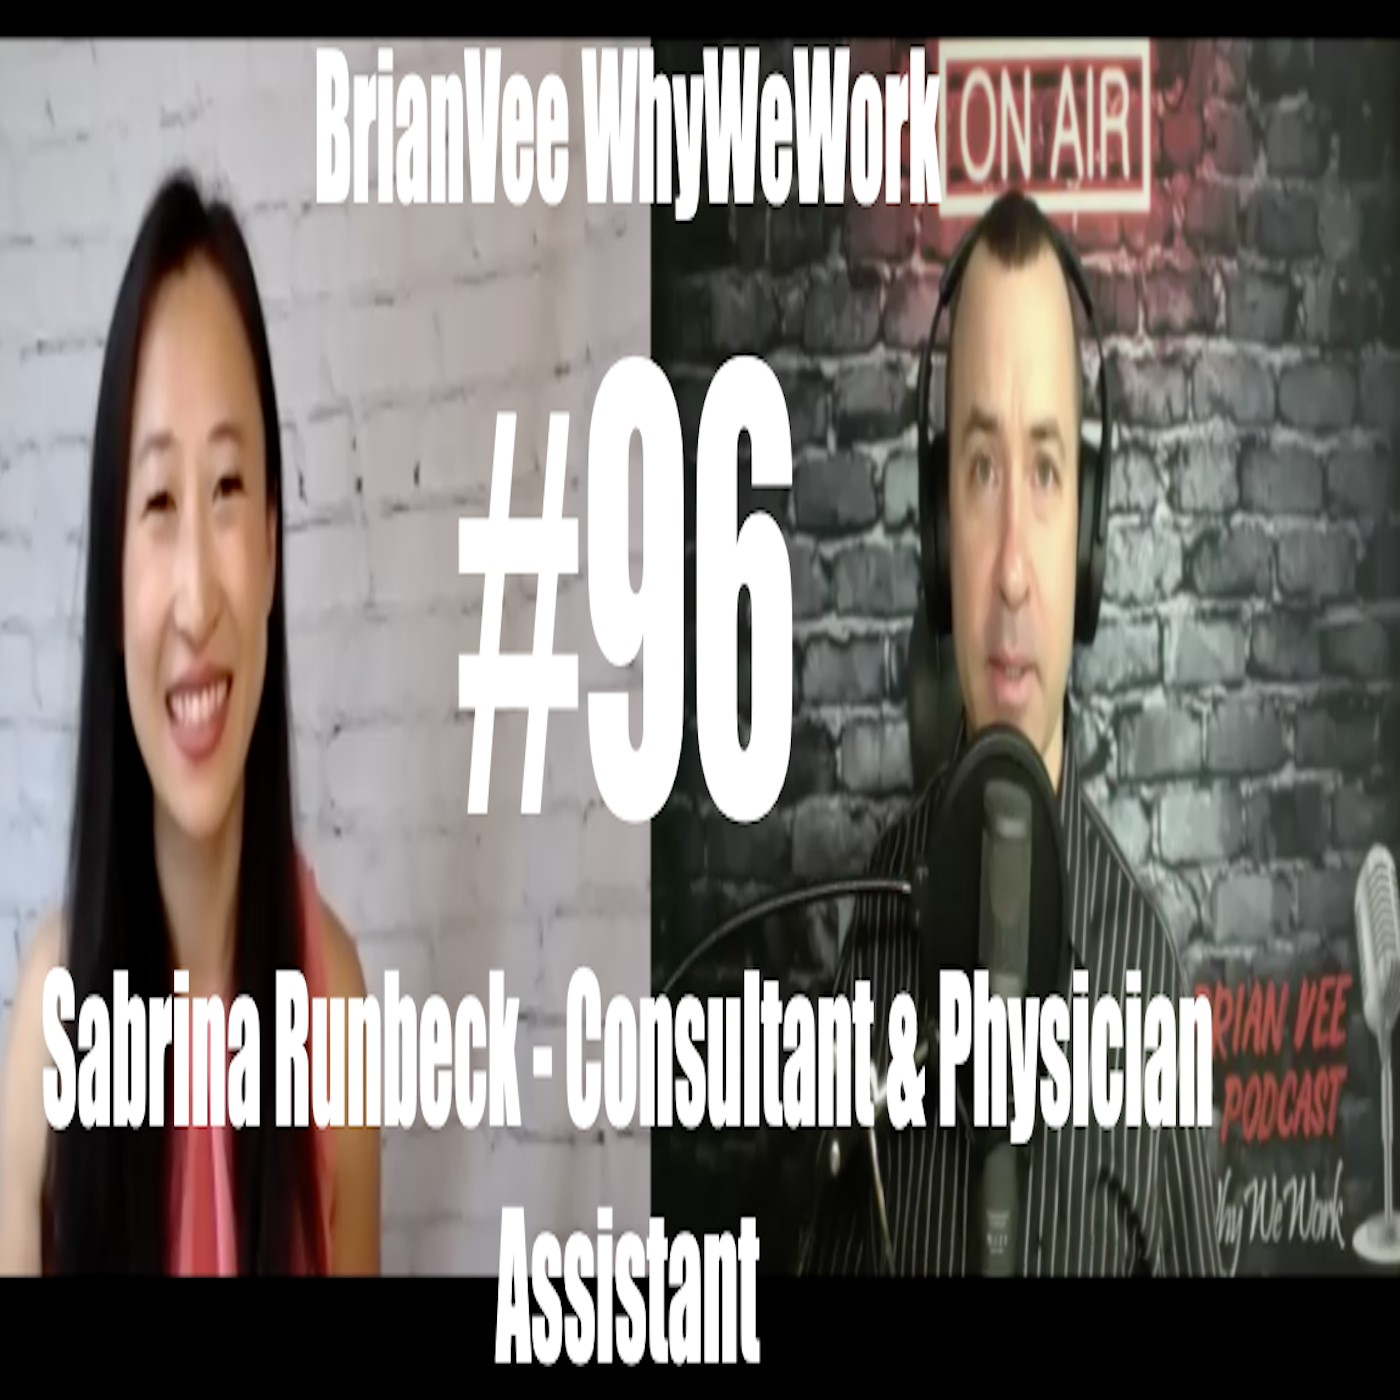 #96 Sarbrina Runbeck - Consultant & Physician Assistant - BrianVee WhyWeWork